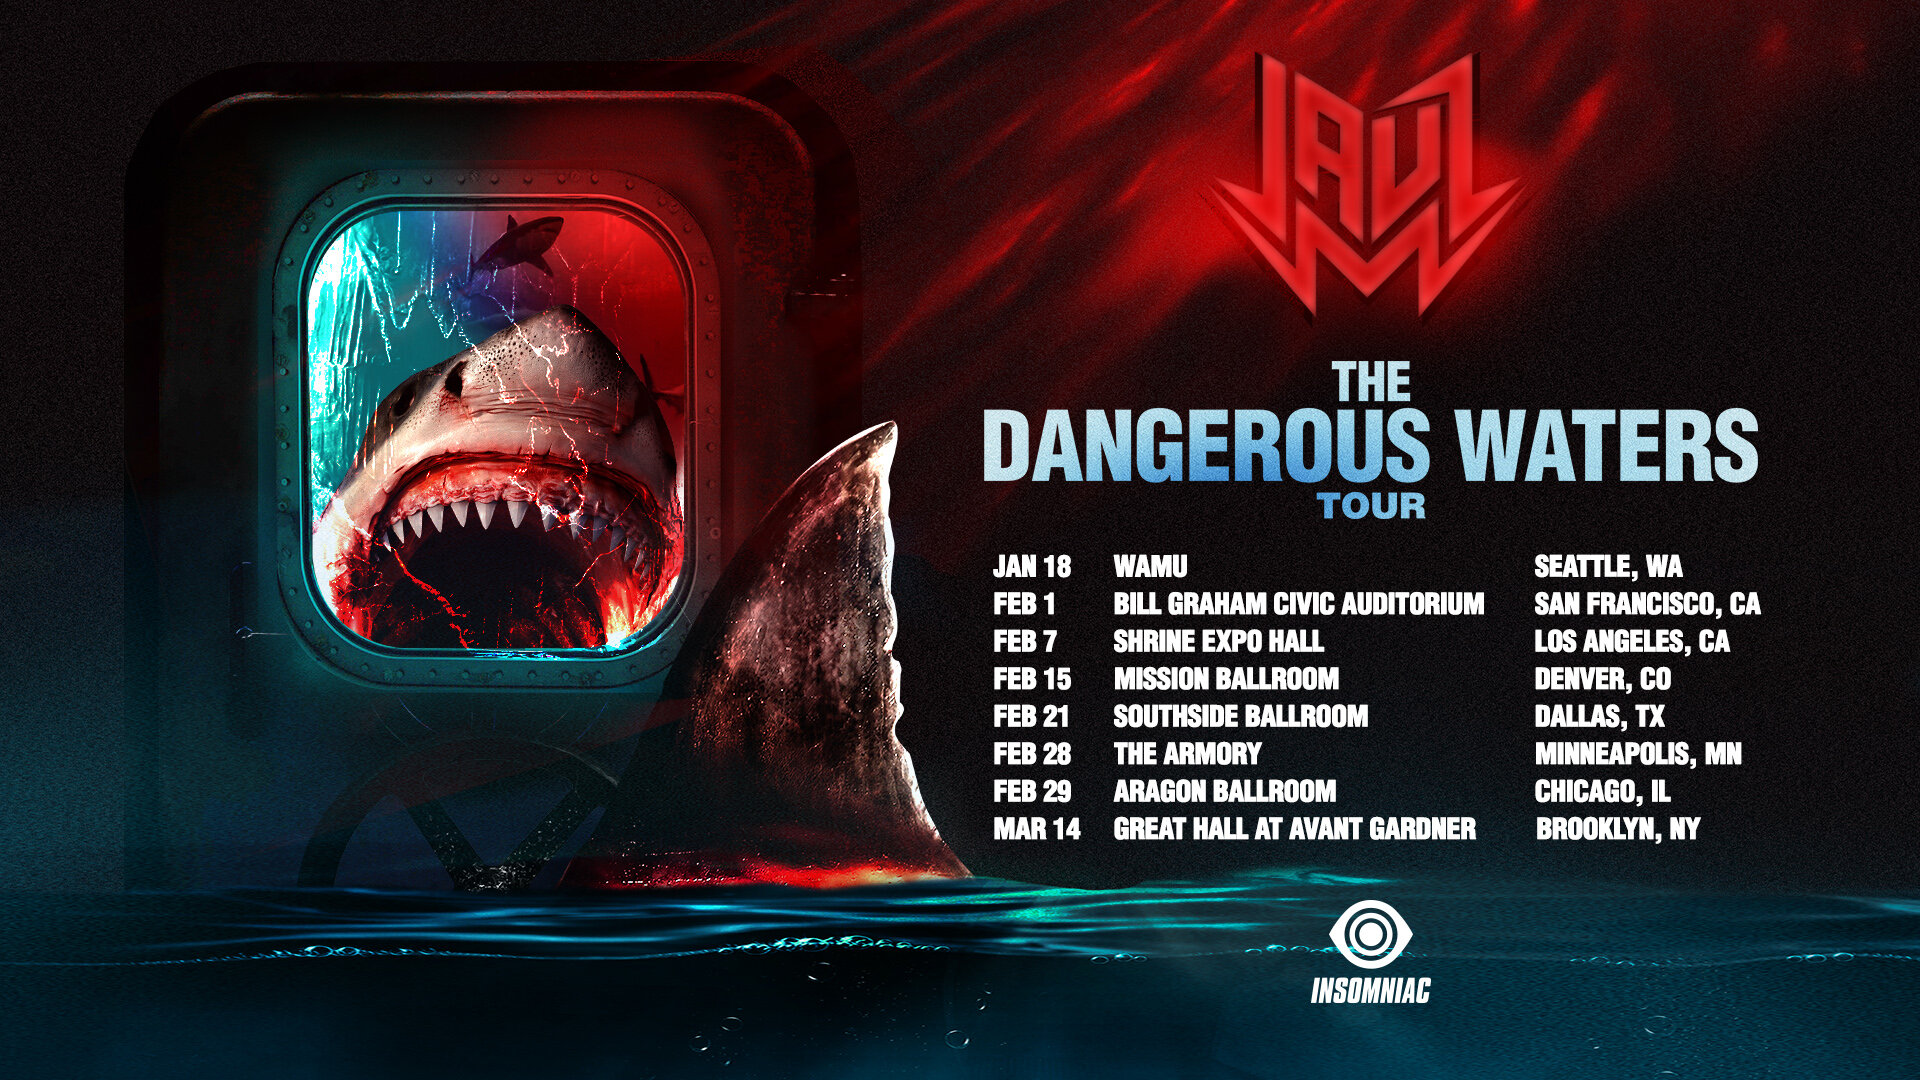 JAUZ Dangerous Waters Tour 2020